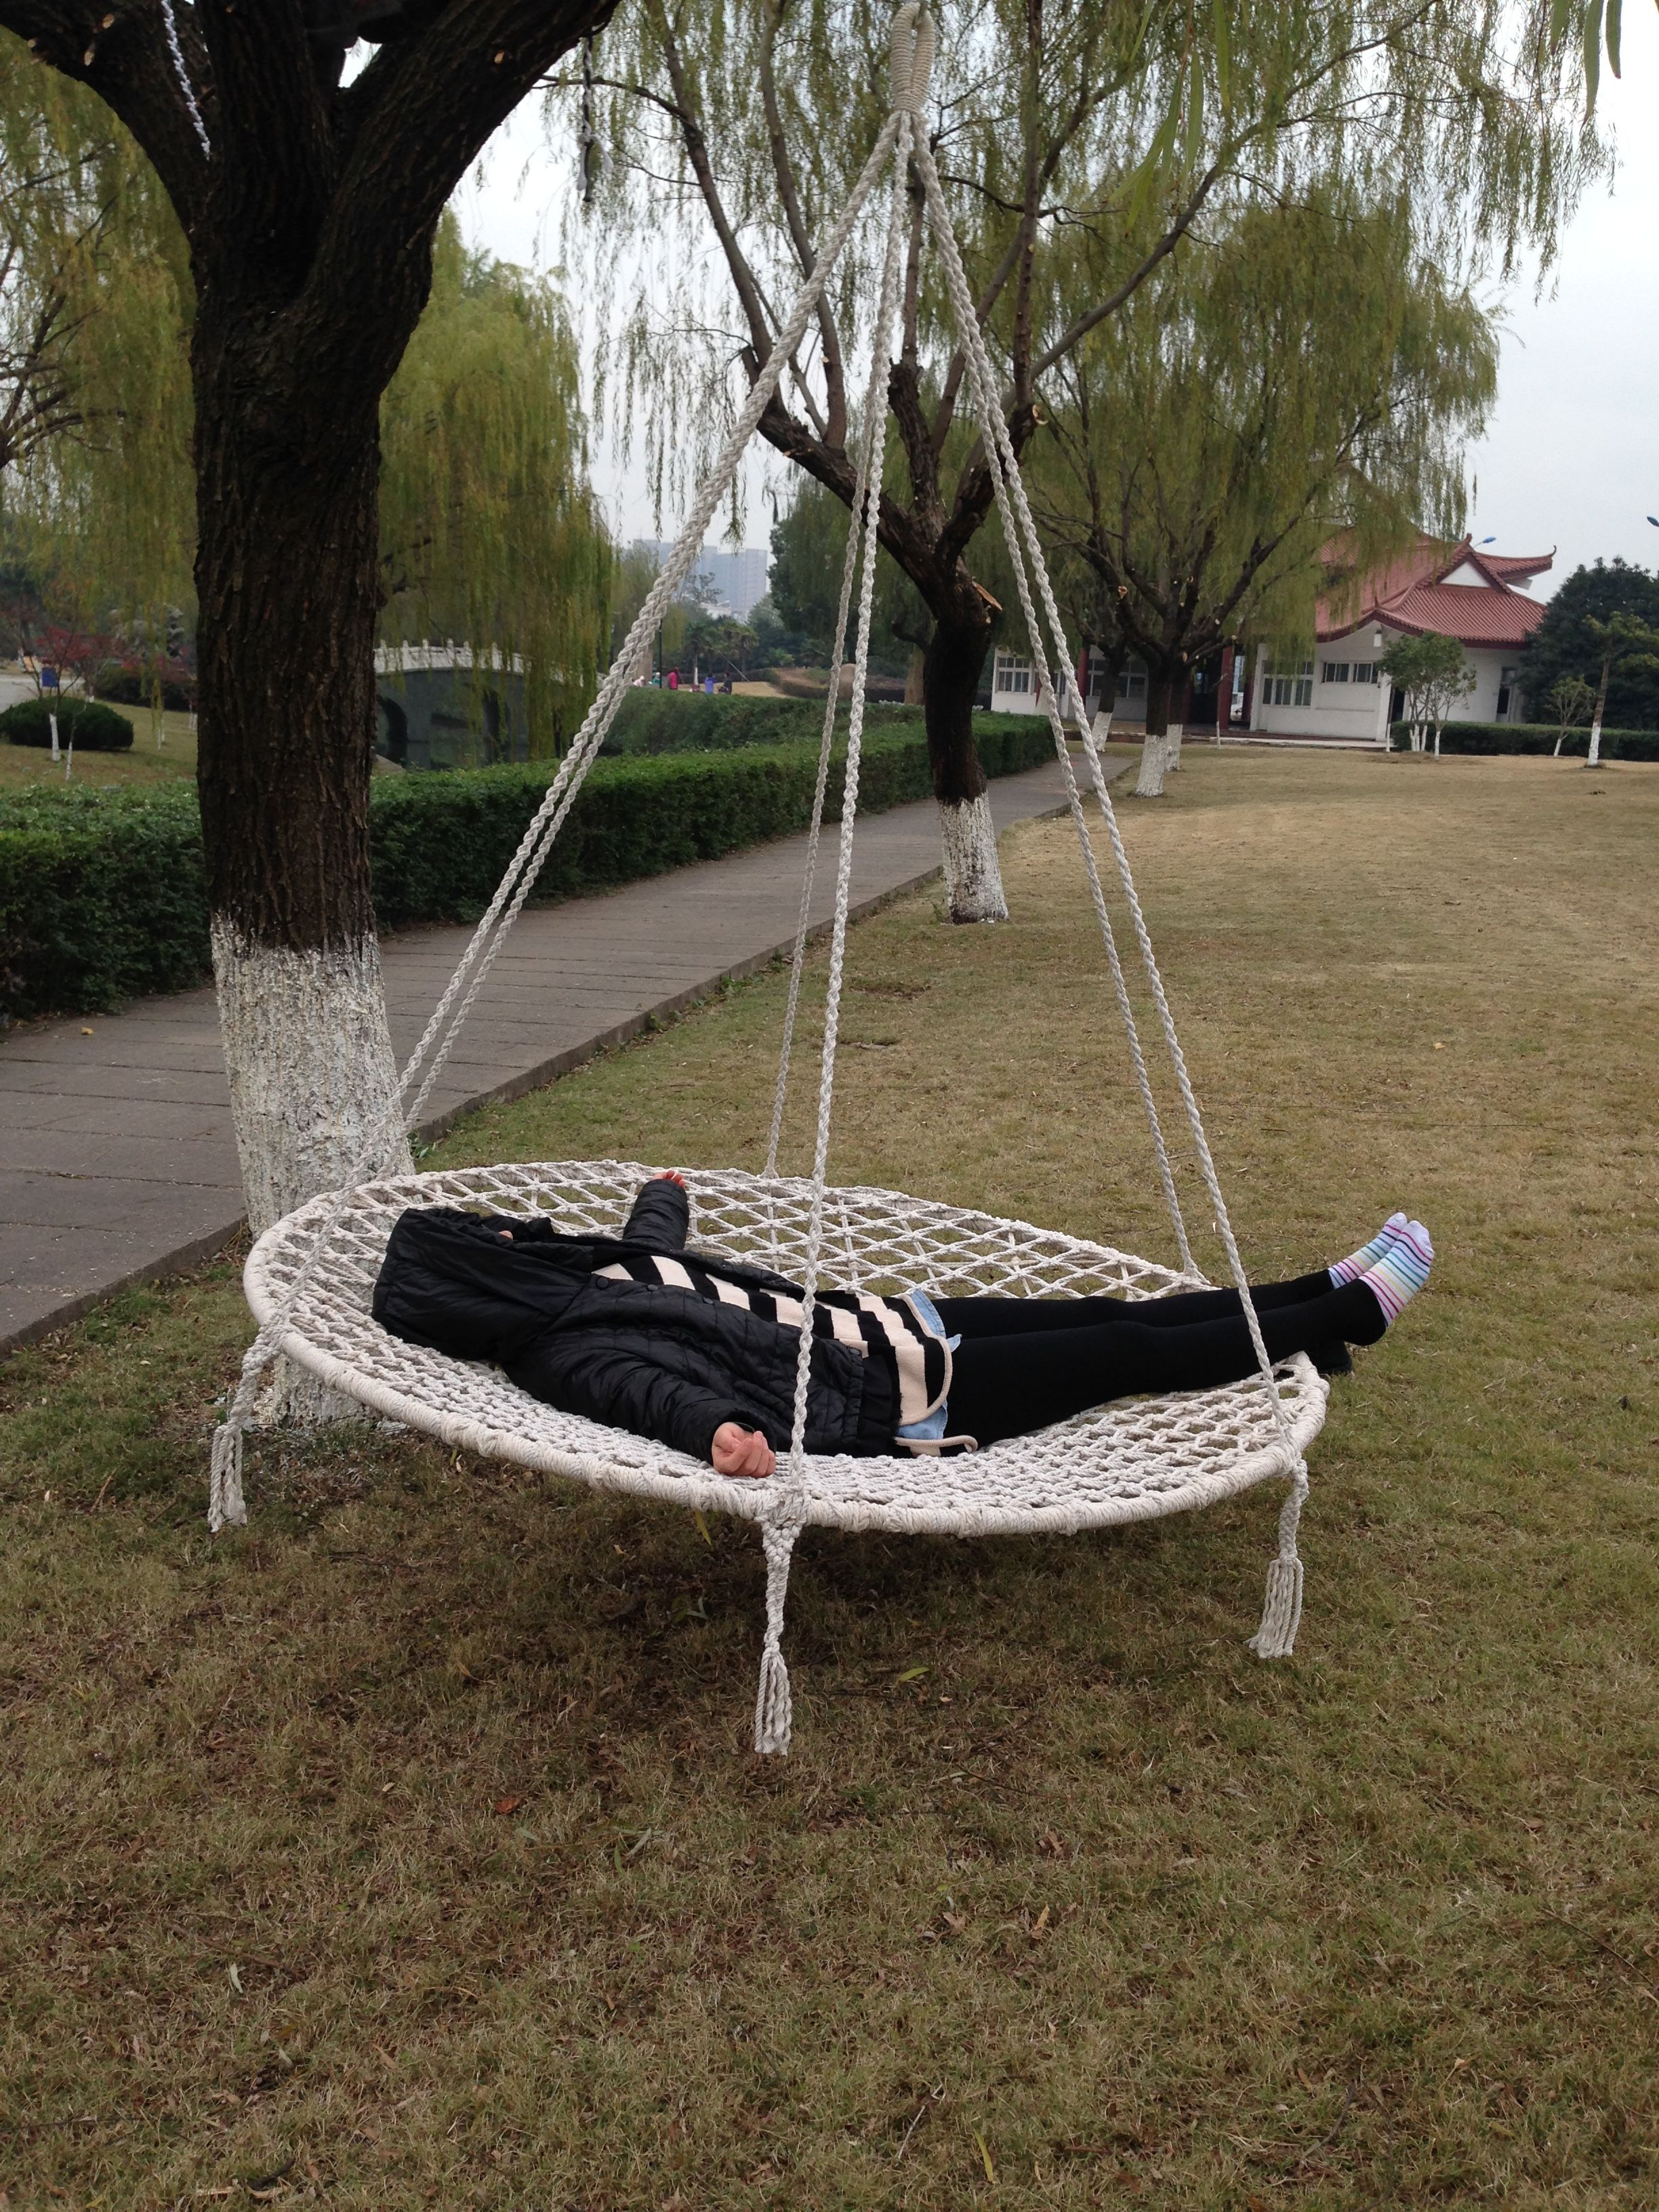 Round Swing Swing Chair Swing Bed Hanging Bed Hanging Chair